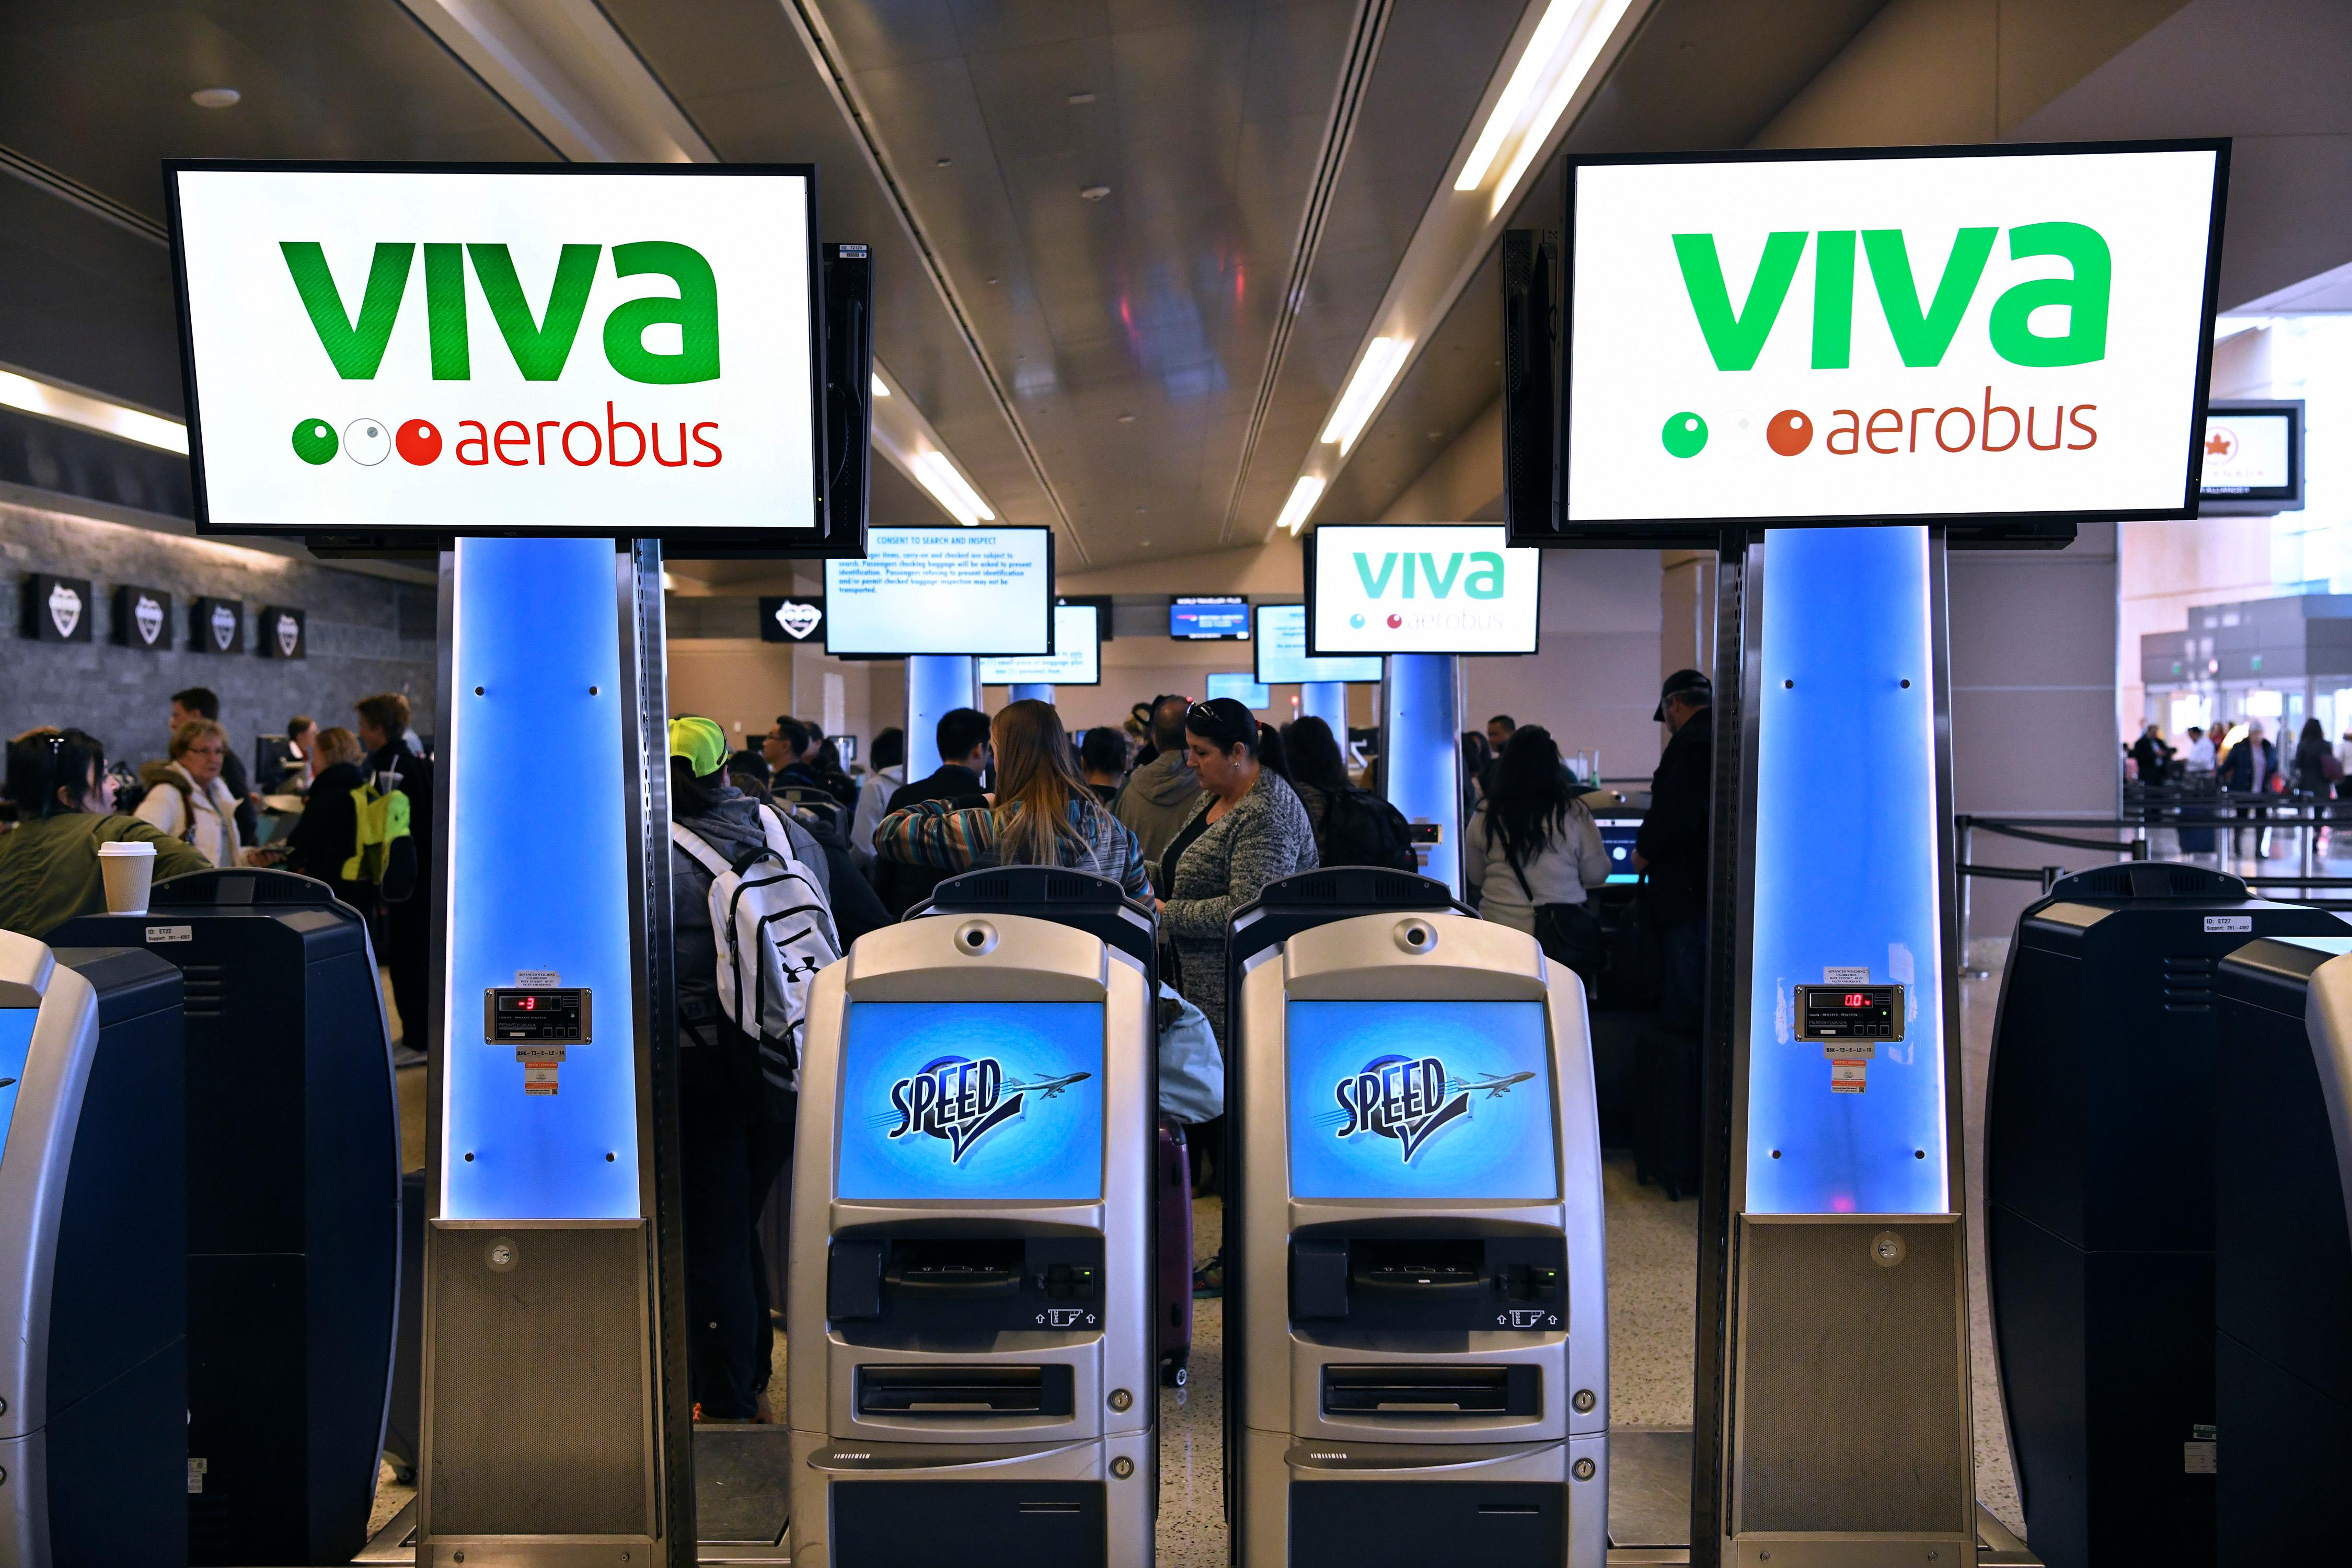 Viva Aerobus signage is seen during a news conference at McCarran International Airport to announce new Viva Aerobus service between Las Vegas and Mexico City  Friday, December 15, 2017. CREDIT: Sam Morris/Las Vegas News Bureau